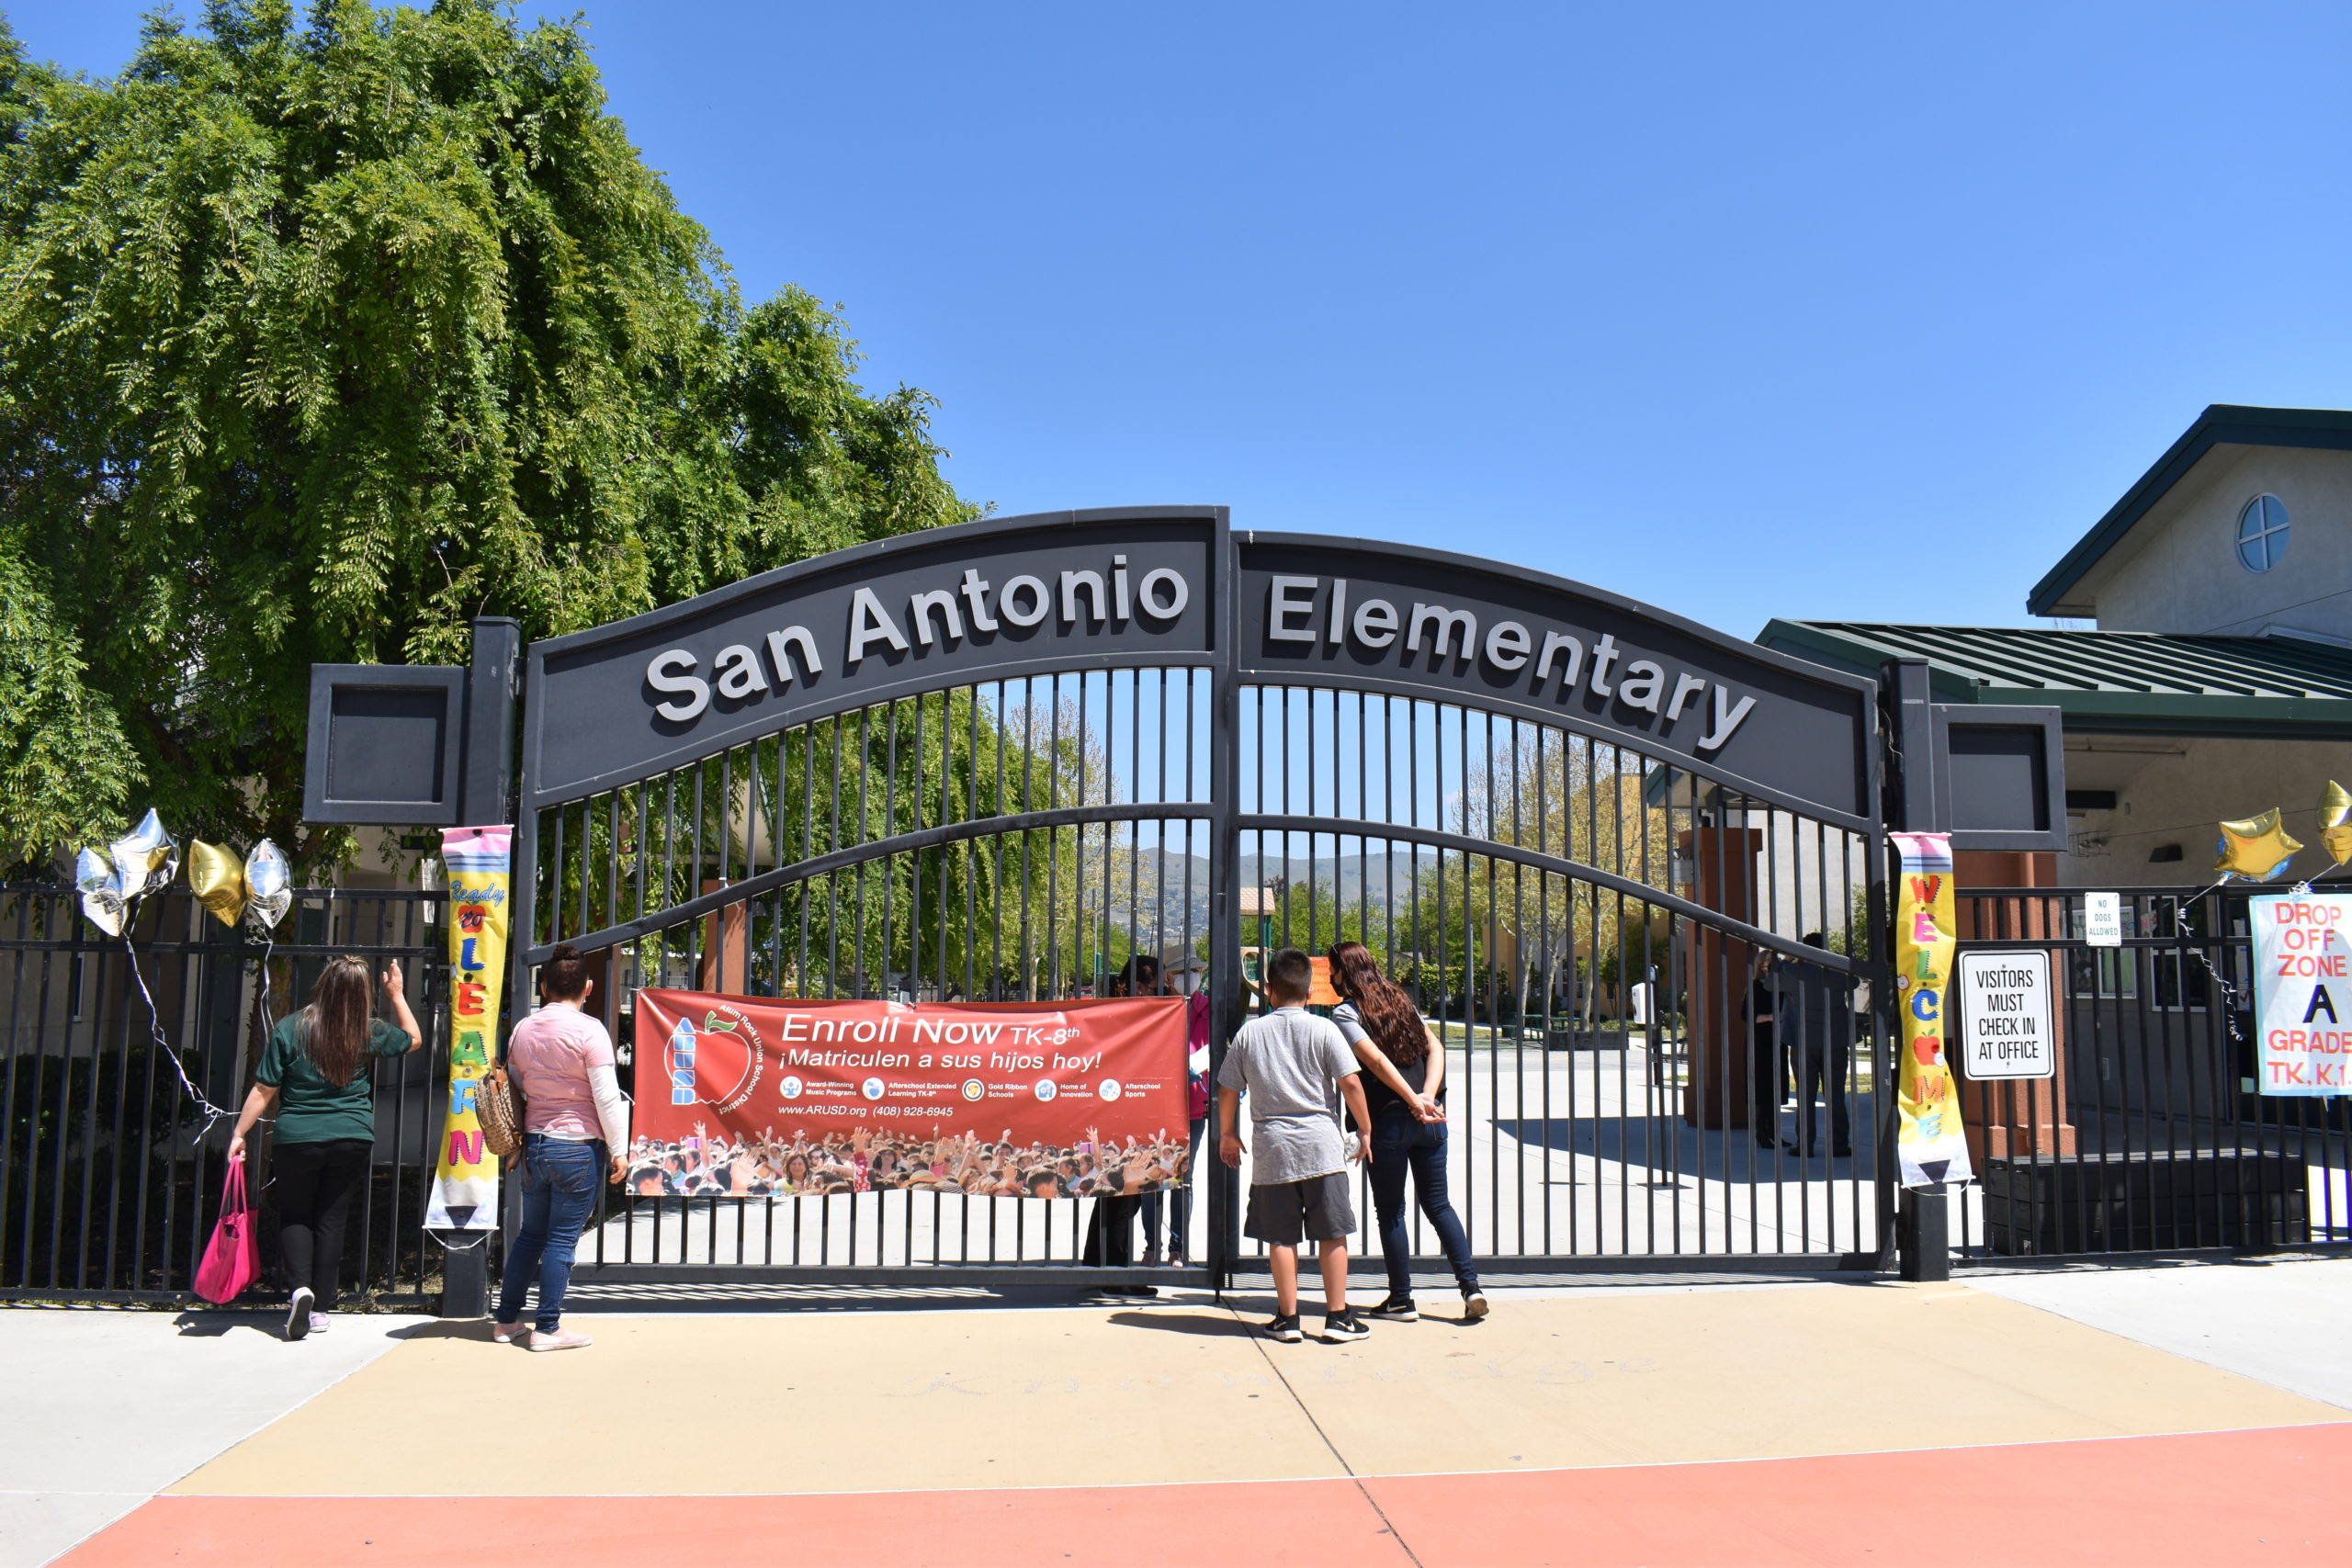 Students eager for school to reopen peek through the gate at San Antonio Elementary School, an Alum Rock Union School District campus. Photo by Lorraine Gabbert.